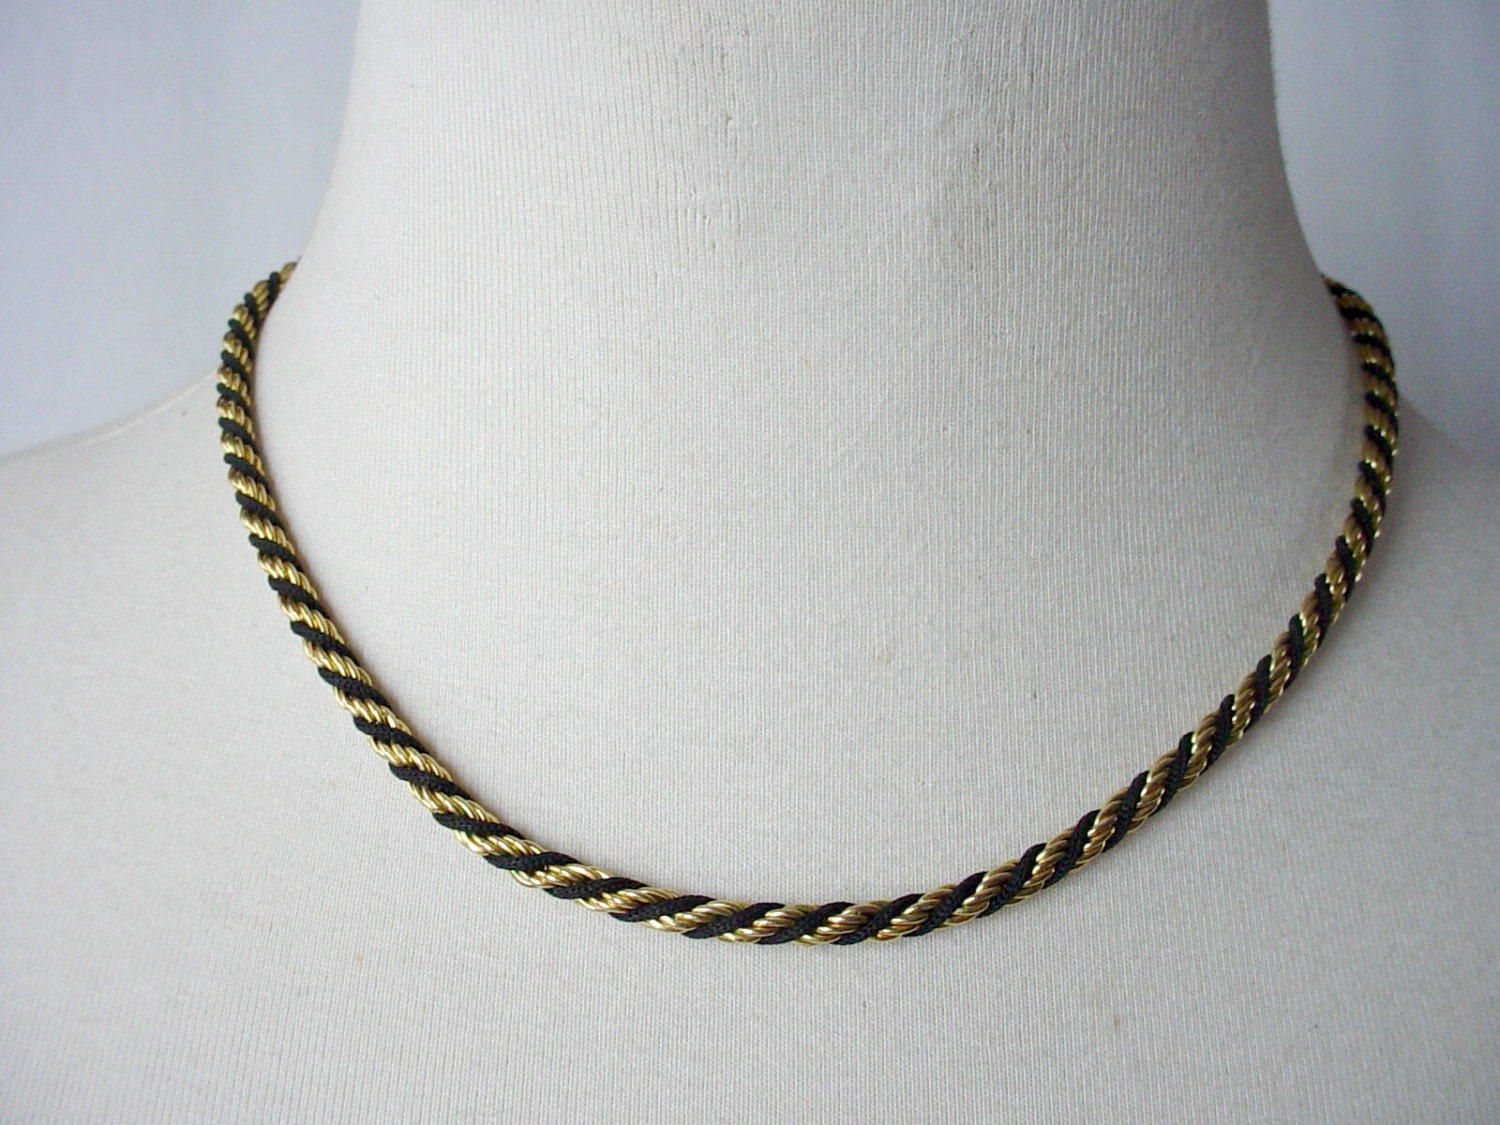 black and gold rope necklace vintage monet twist chain